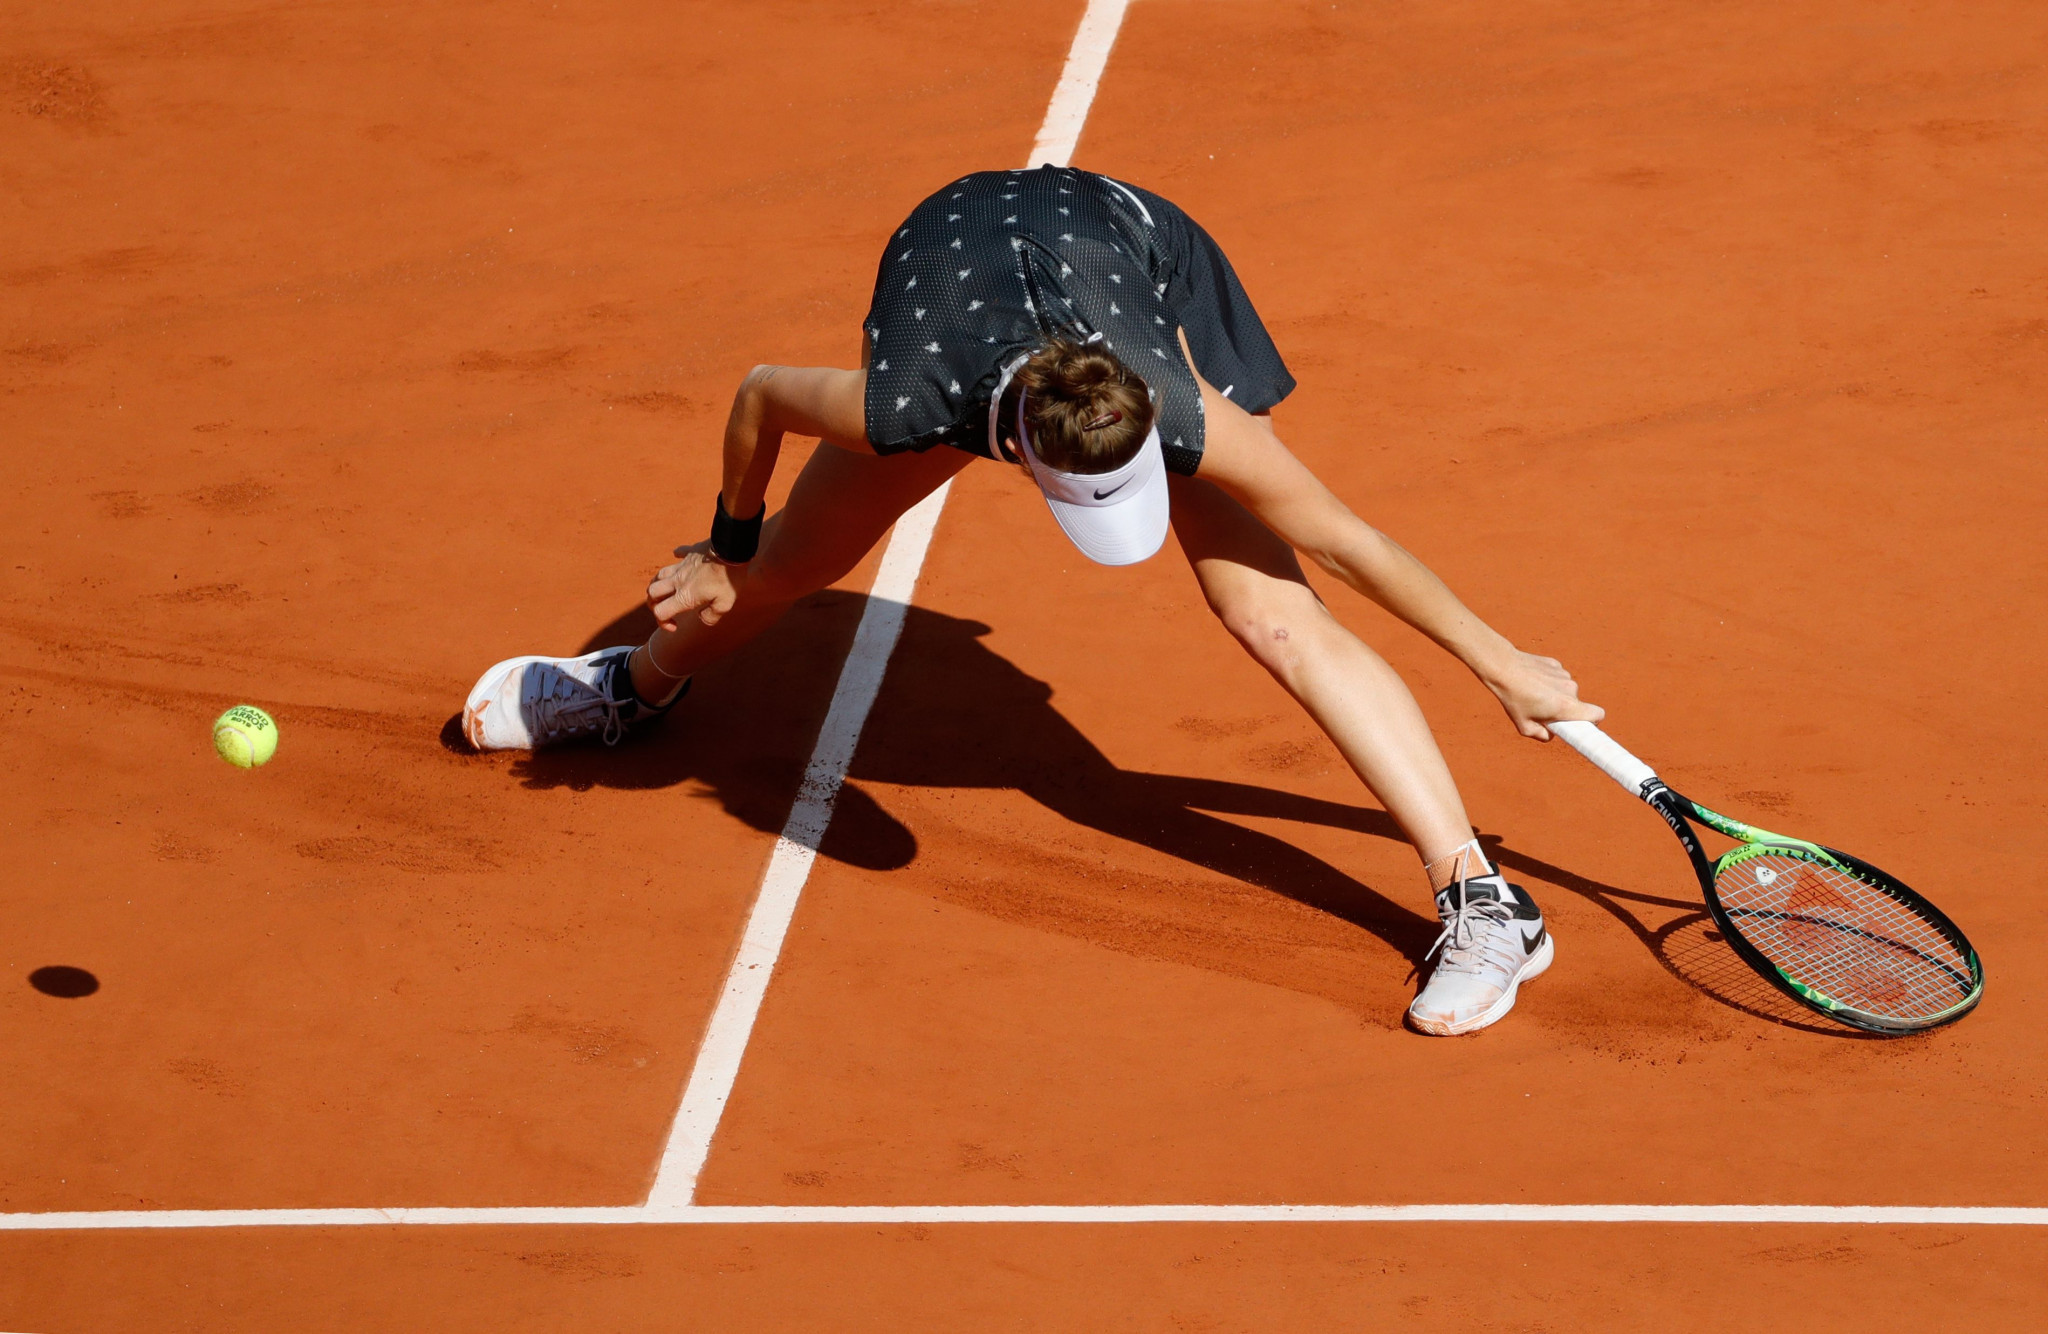 The Czech teenager fails to reach a Barty return  on court Philippe Chatrier ©Getty Images